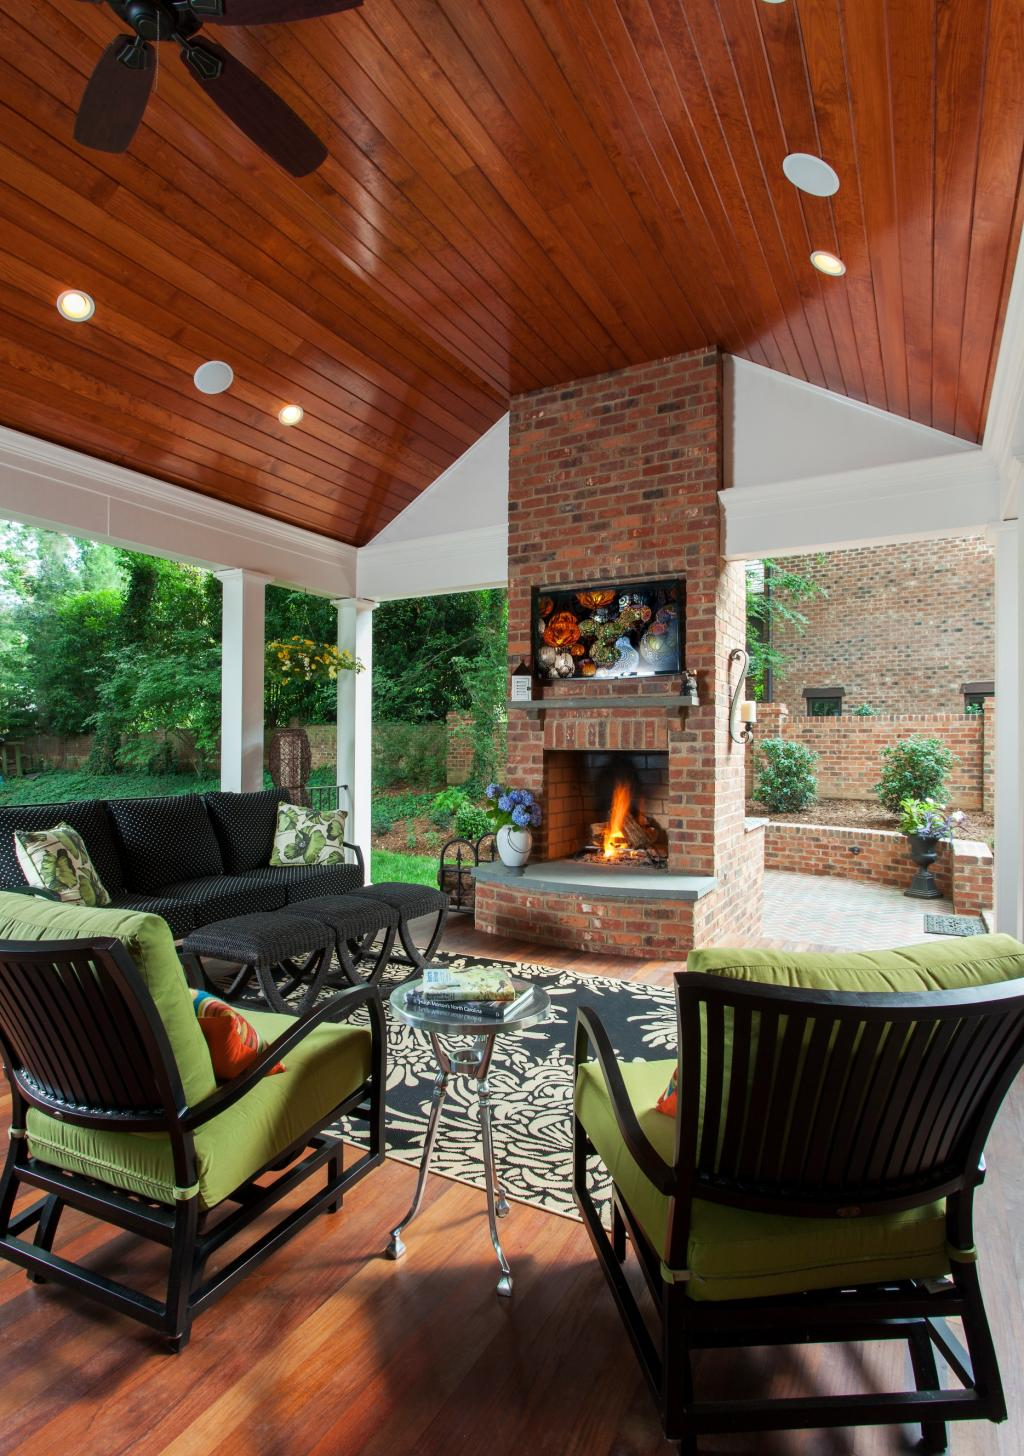 Forest Drive Covered Porch Renovation   Alair Homes Charlotte on Doobz Outdoor Living id=19805